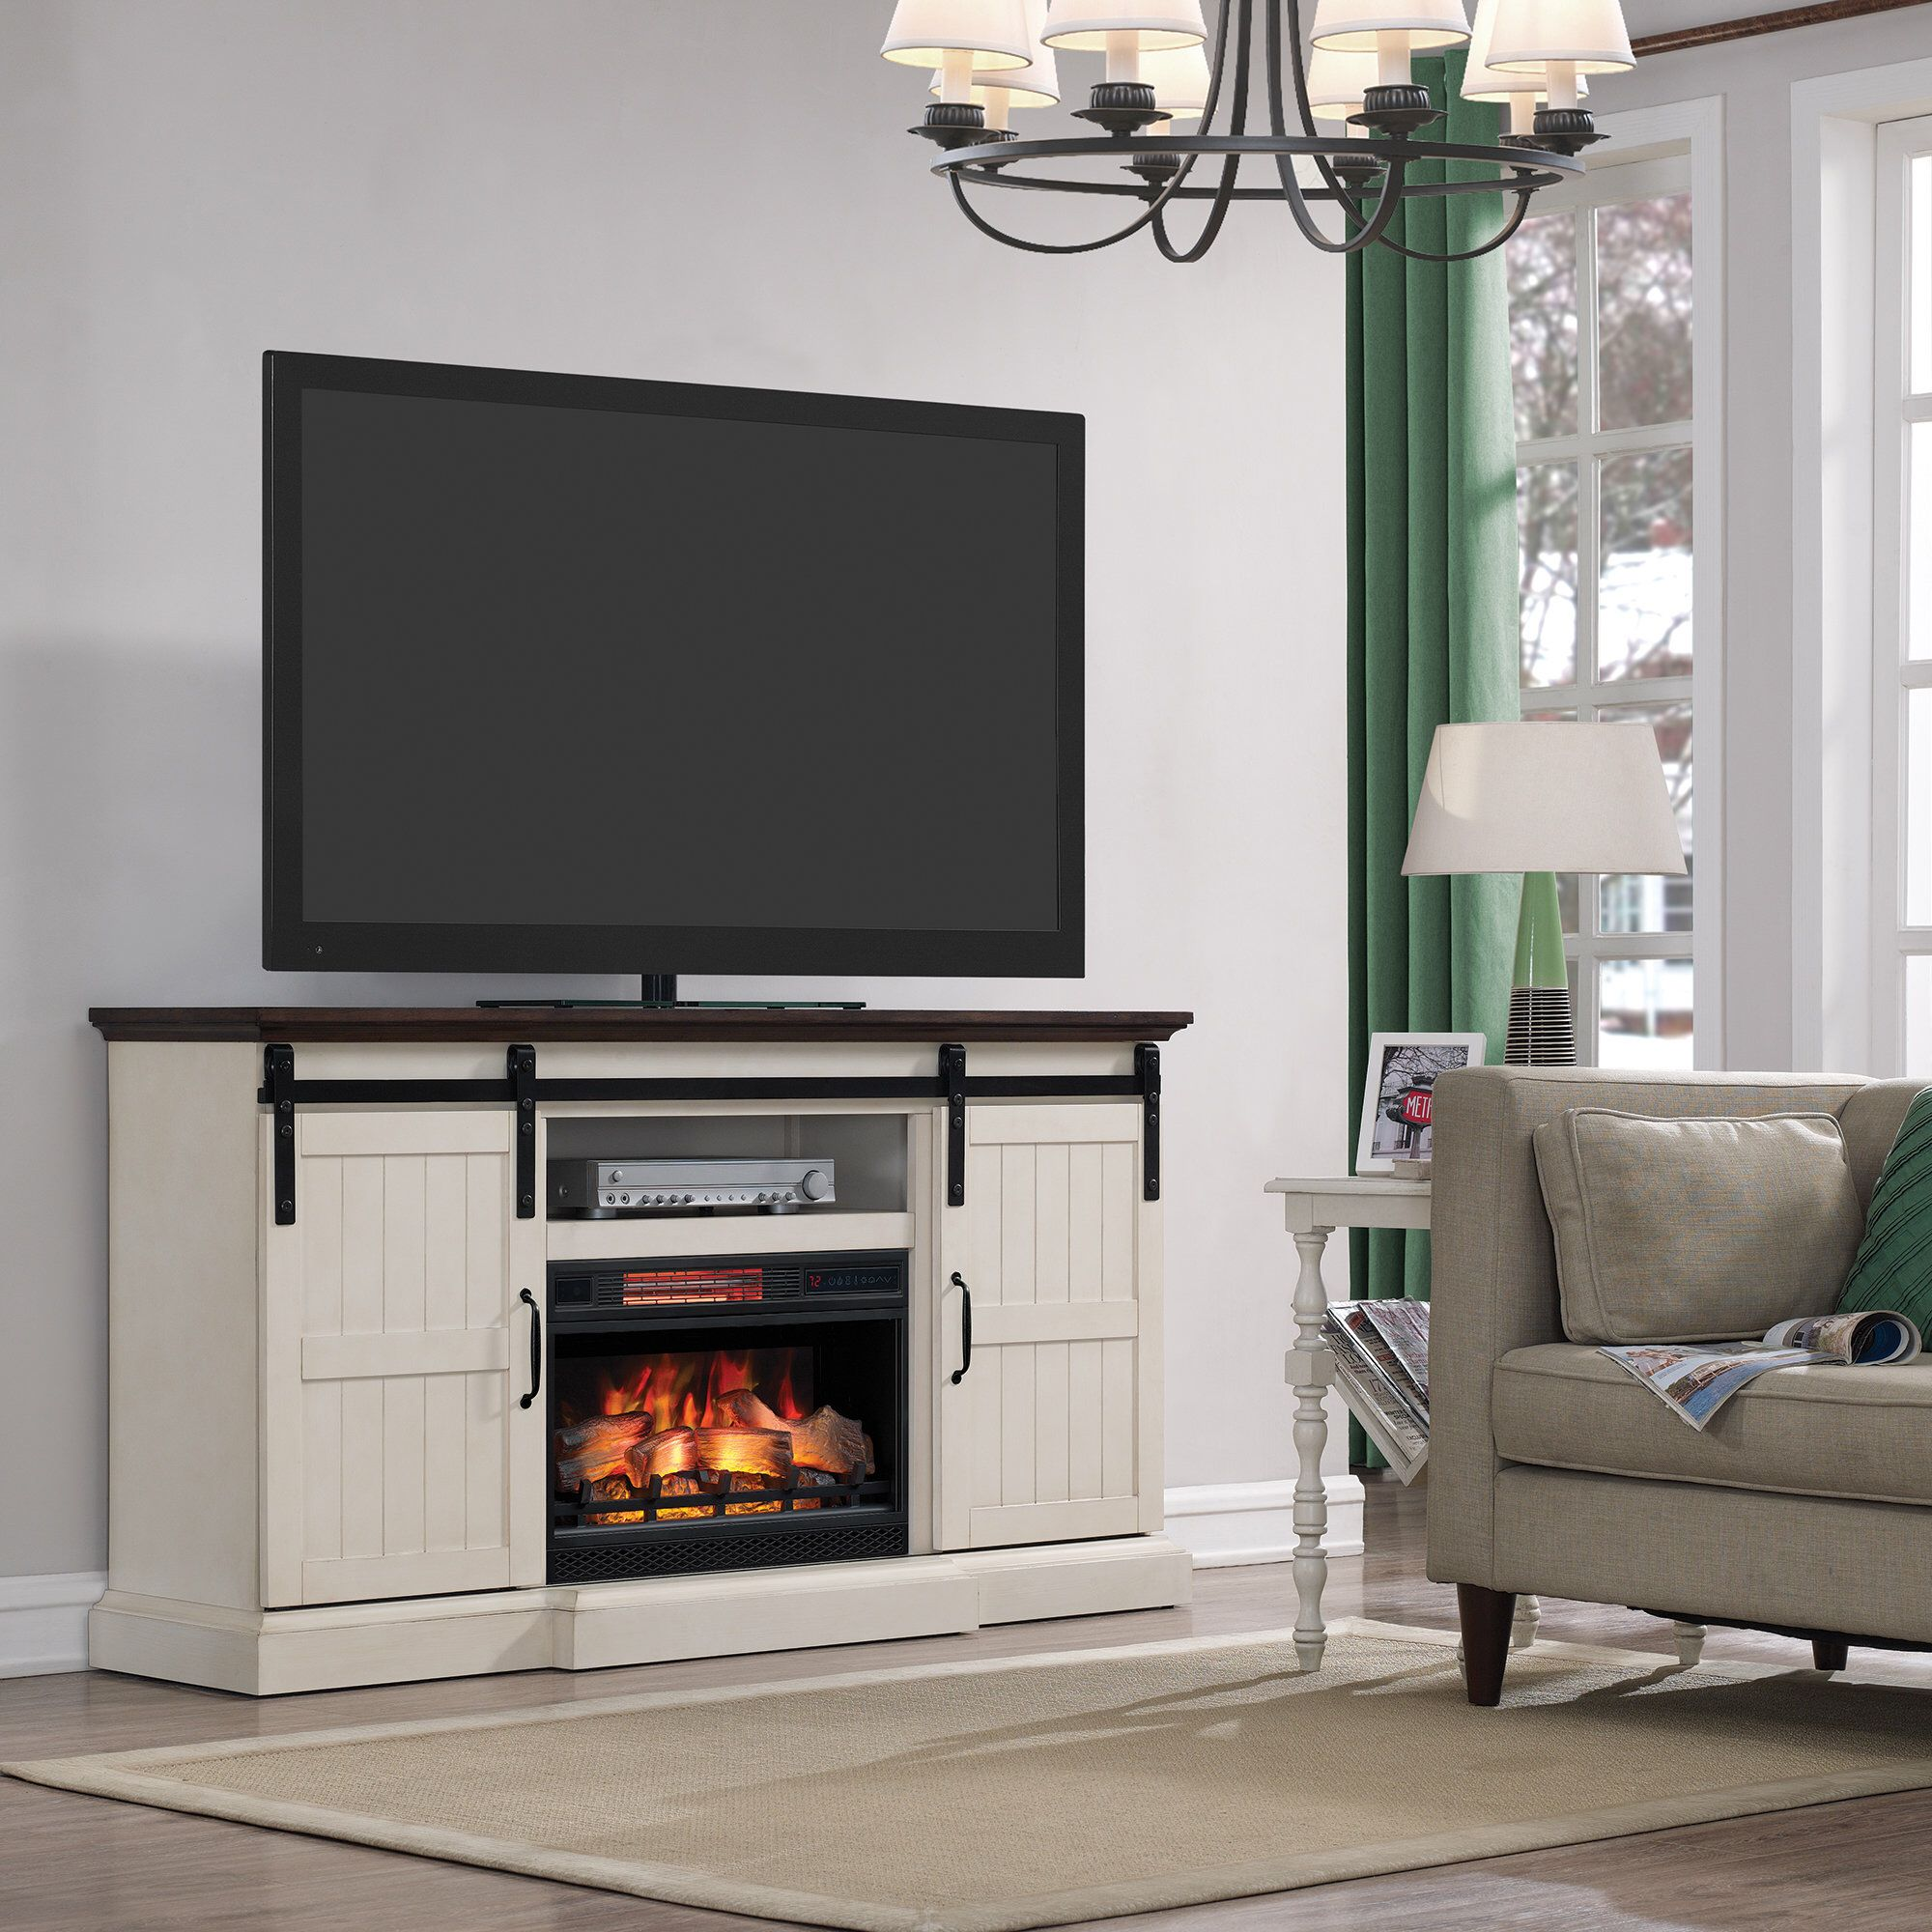 """Tv Cabinet with Electric Fireplace Inspirational Glendora 66 5"""" Tv Stand with Electric Fireplace"""